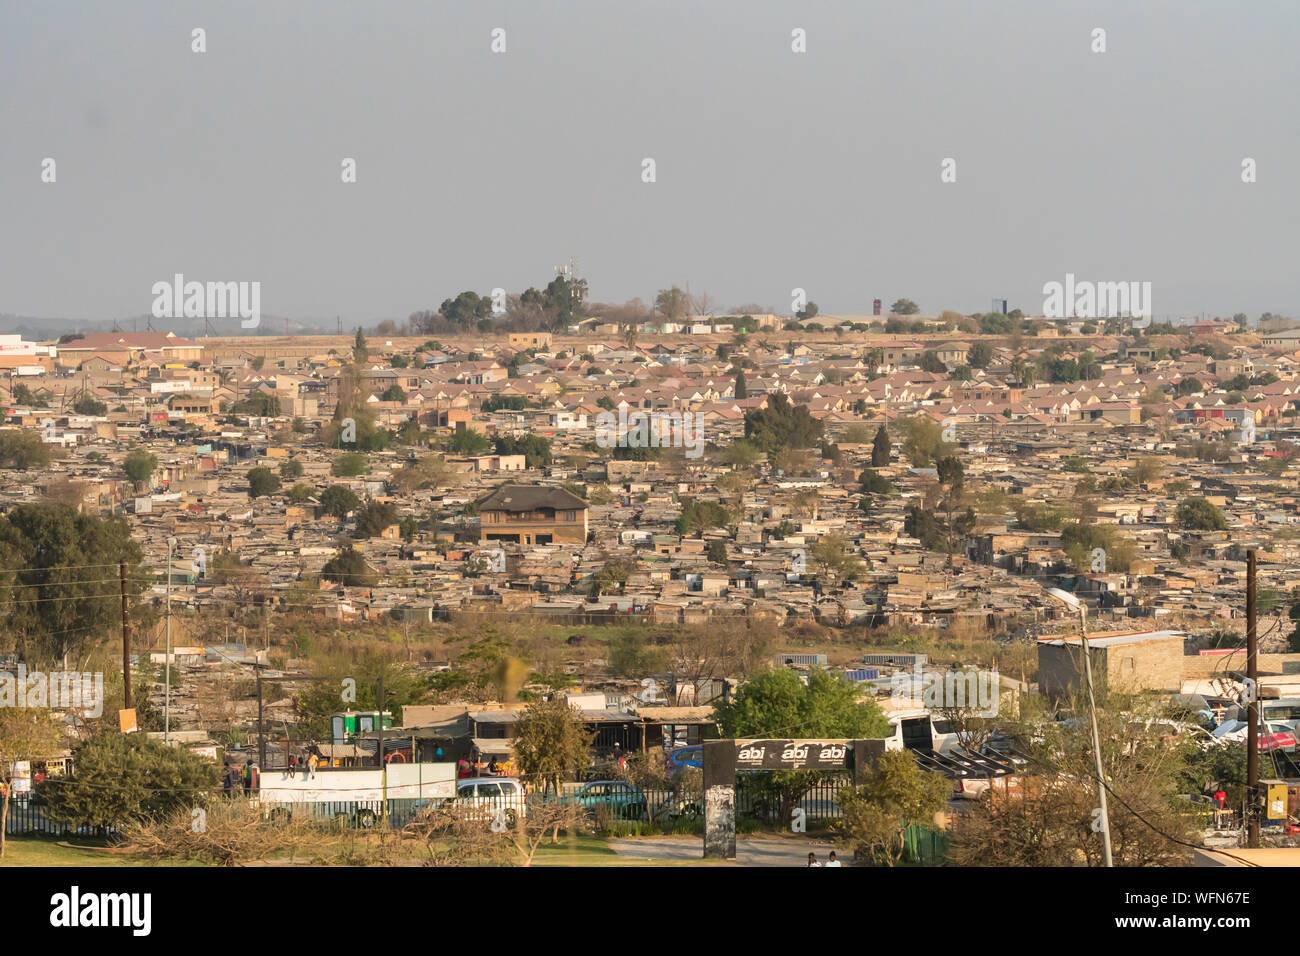 aerial view or view from above over an African township or suburb houses called Diepsloot in Johannesburg, Gauteng, South Africa on a Winter day Stock Photo